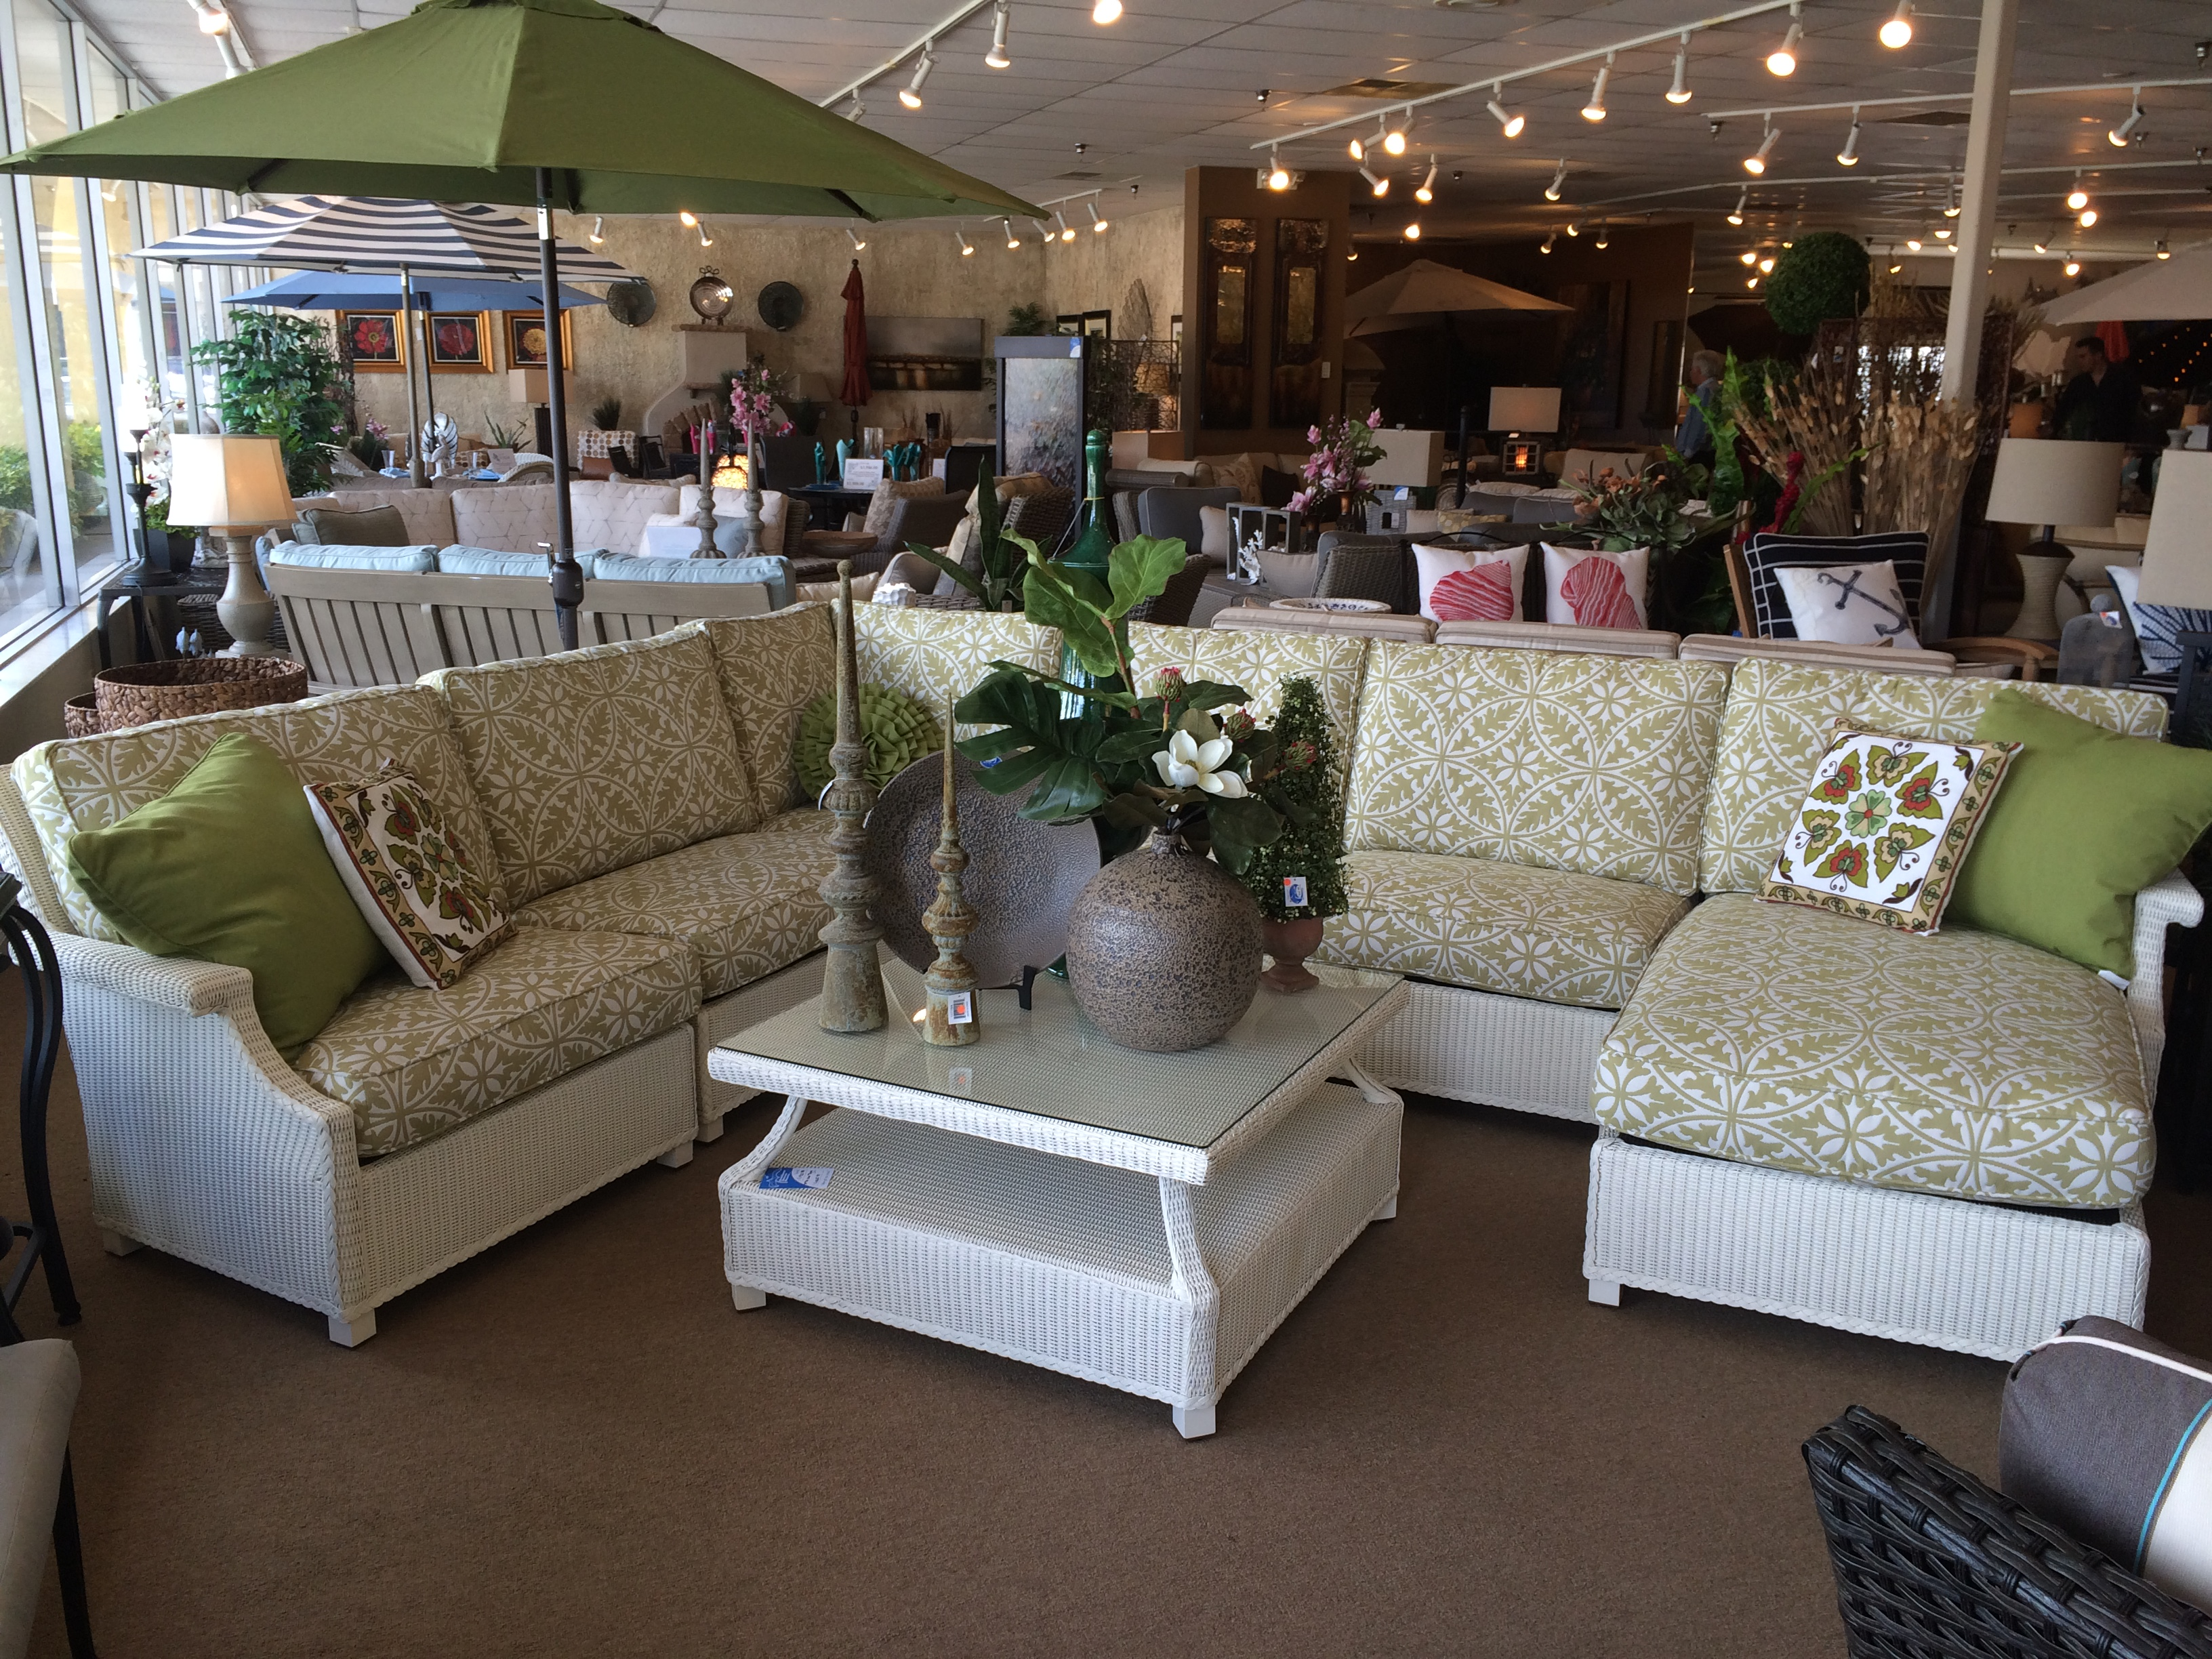 Outdoor Decor Store Inc In Naples Fl 239 659 6